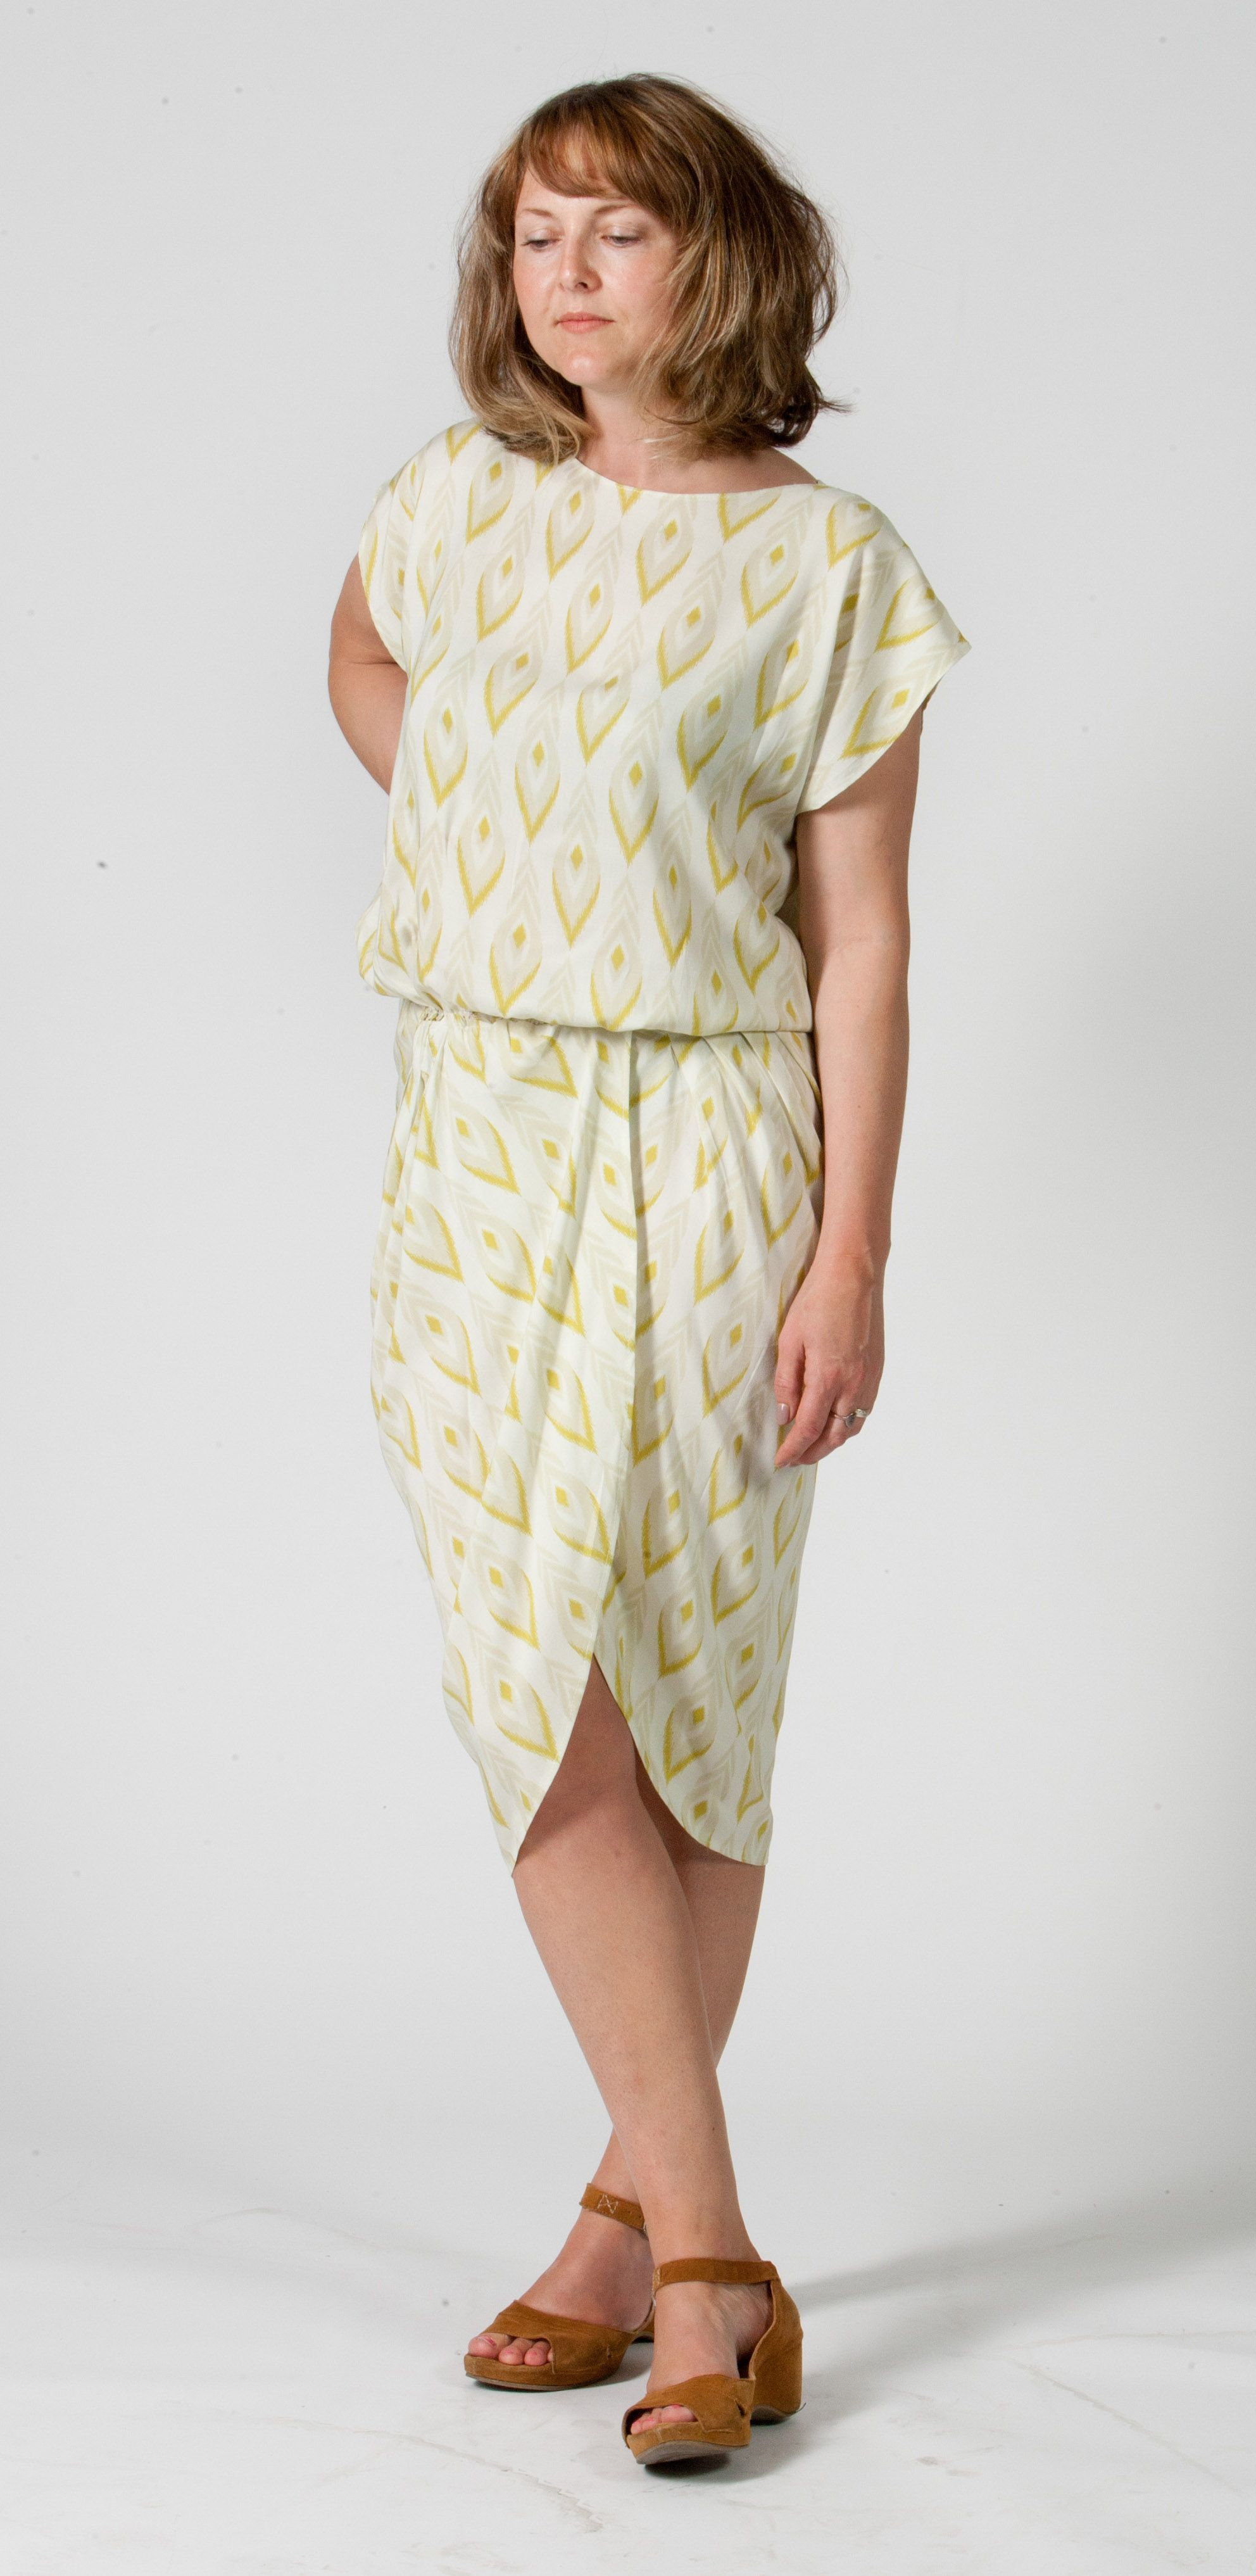 Curvy Drape Dress - FREE SEWING PATTERN with instructions | Bolsos ...